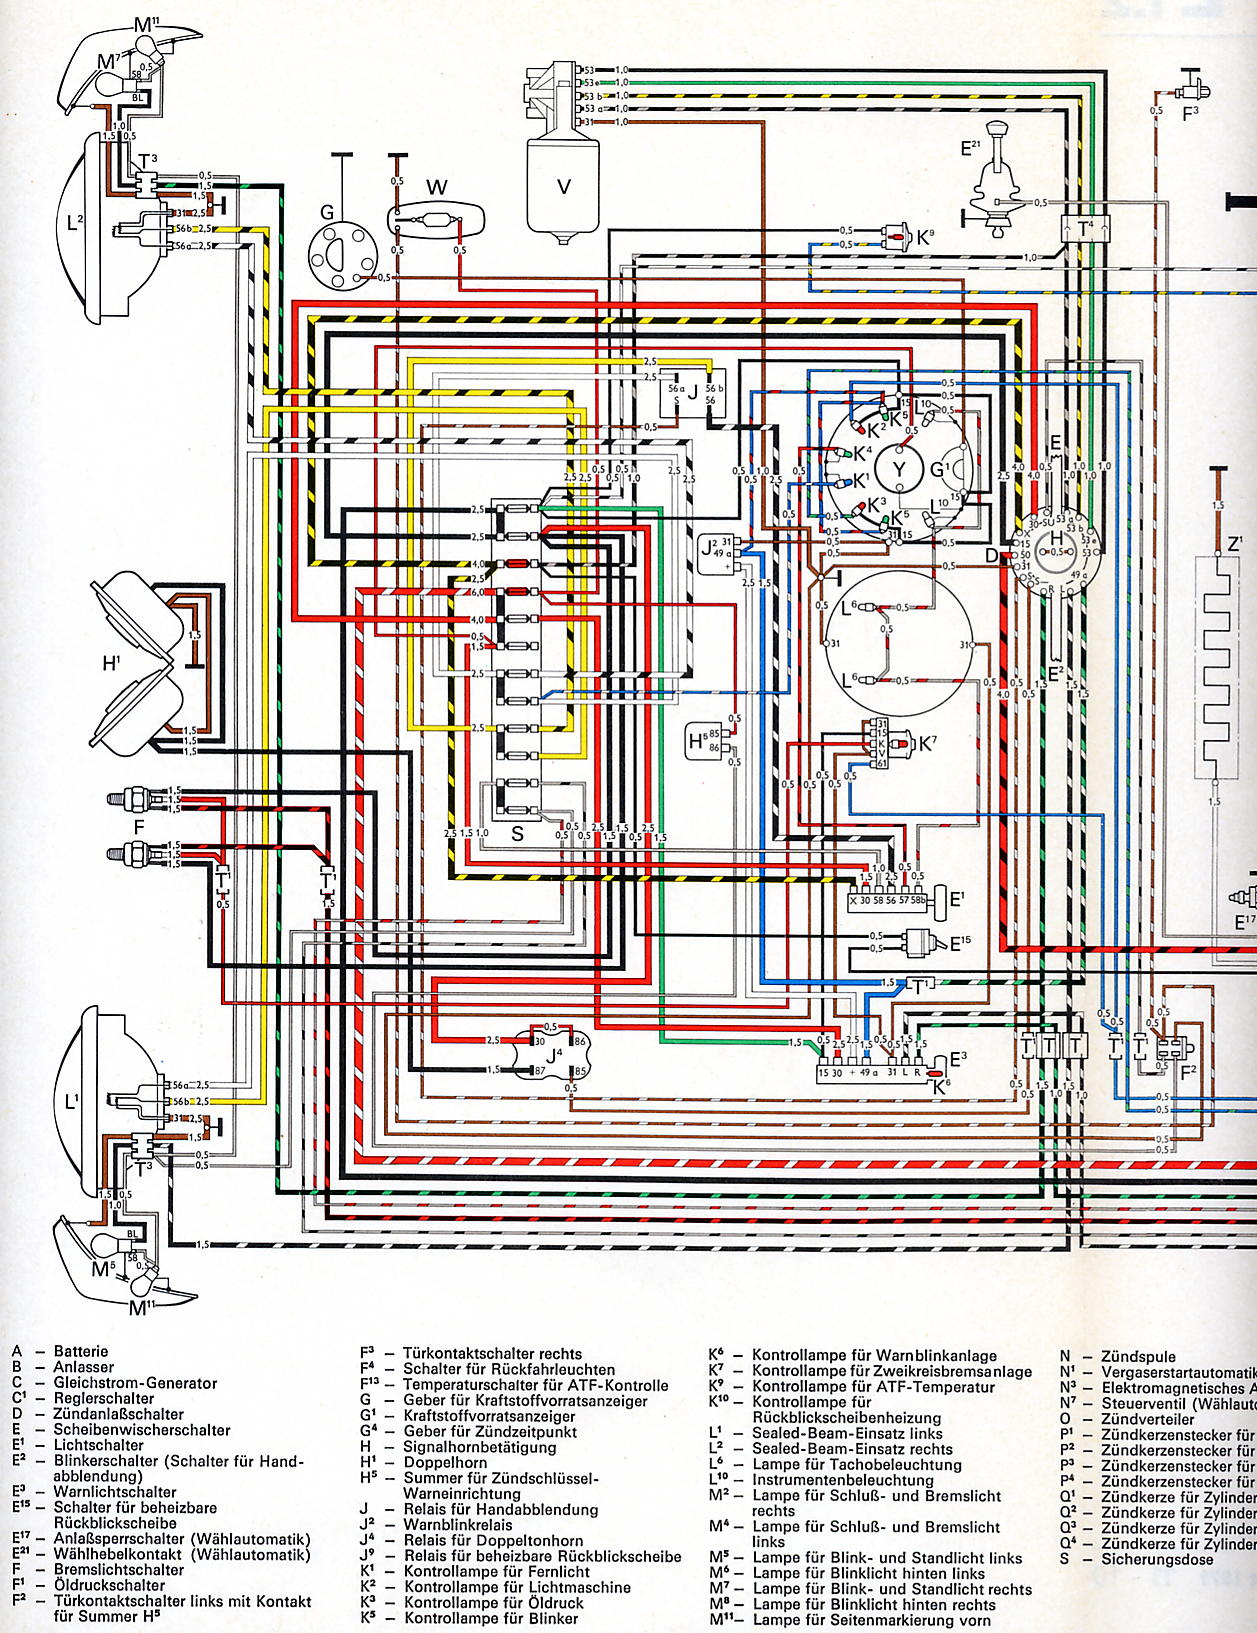 Electrical Wiring Diagram 1971 Karmann Ghia Diy Diagrams 1973 Volkswagen Brake Warning Light Shoptalkforums Com Rh